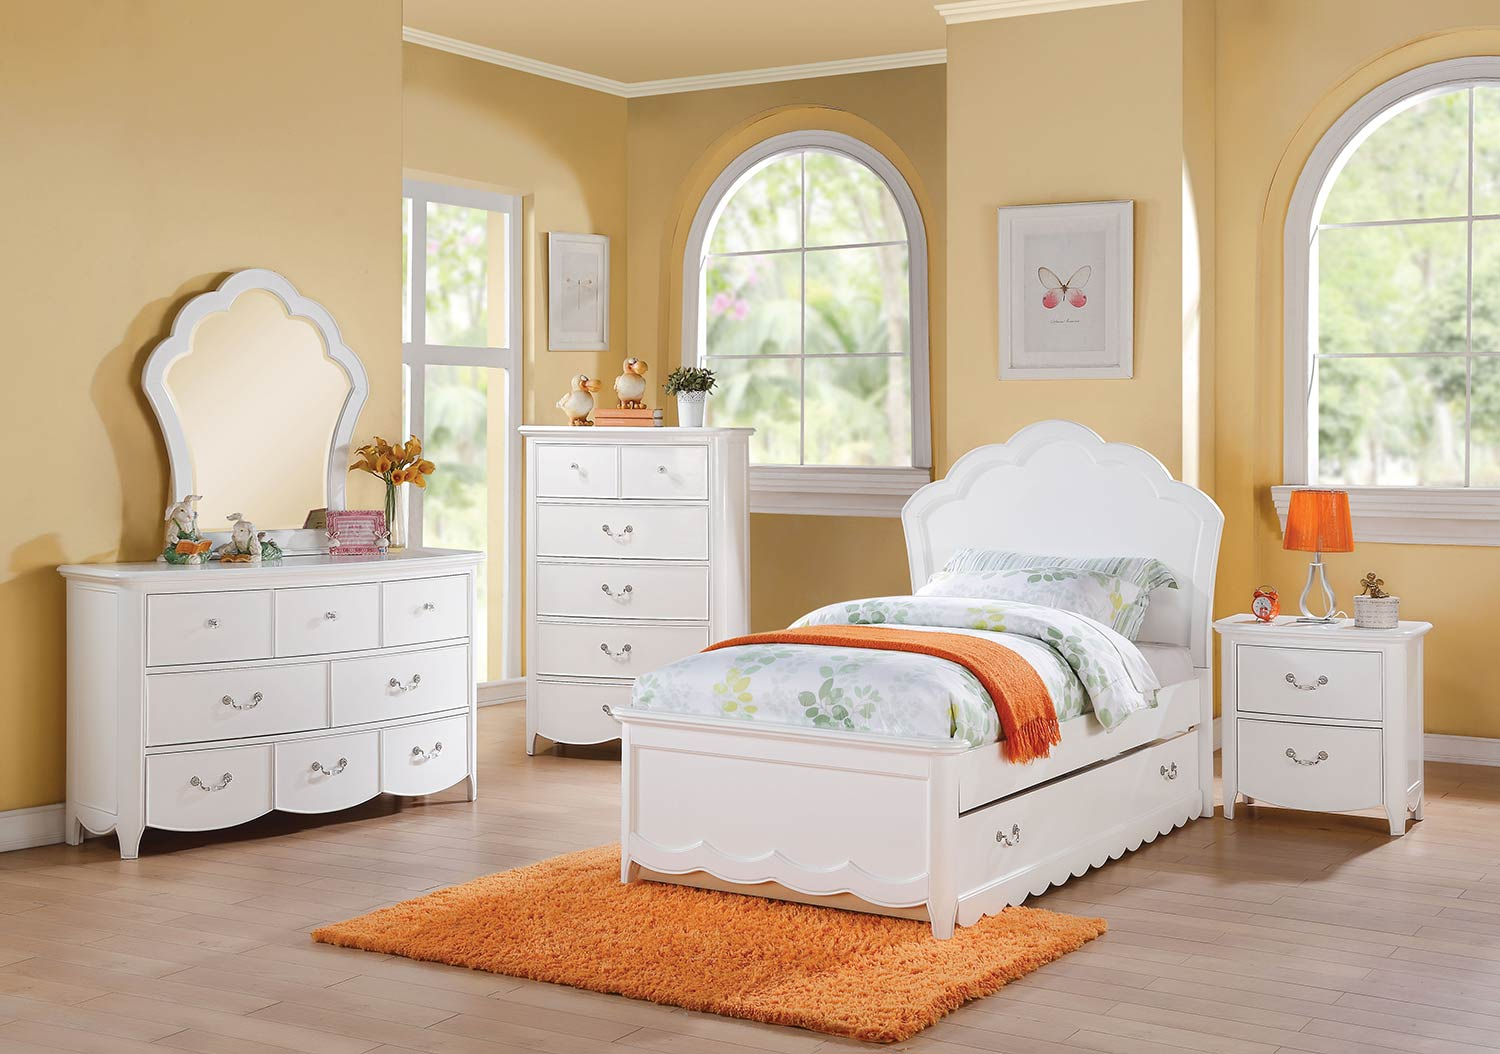 Acme Cecilie Bedroom Set (Wooden HB) - White